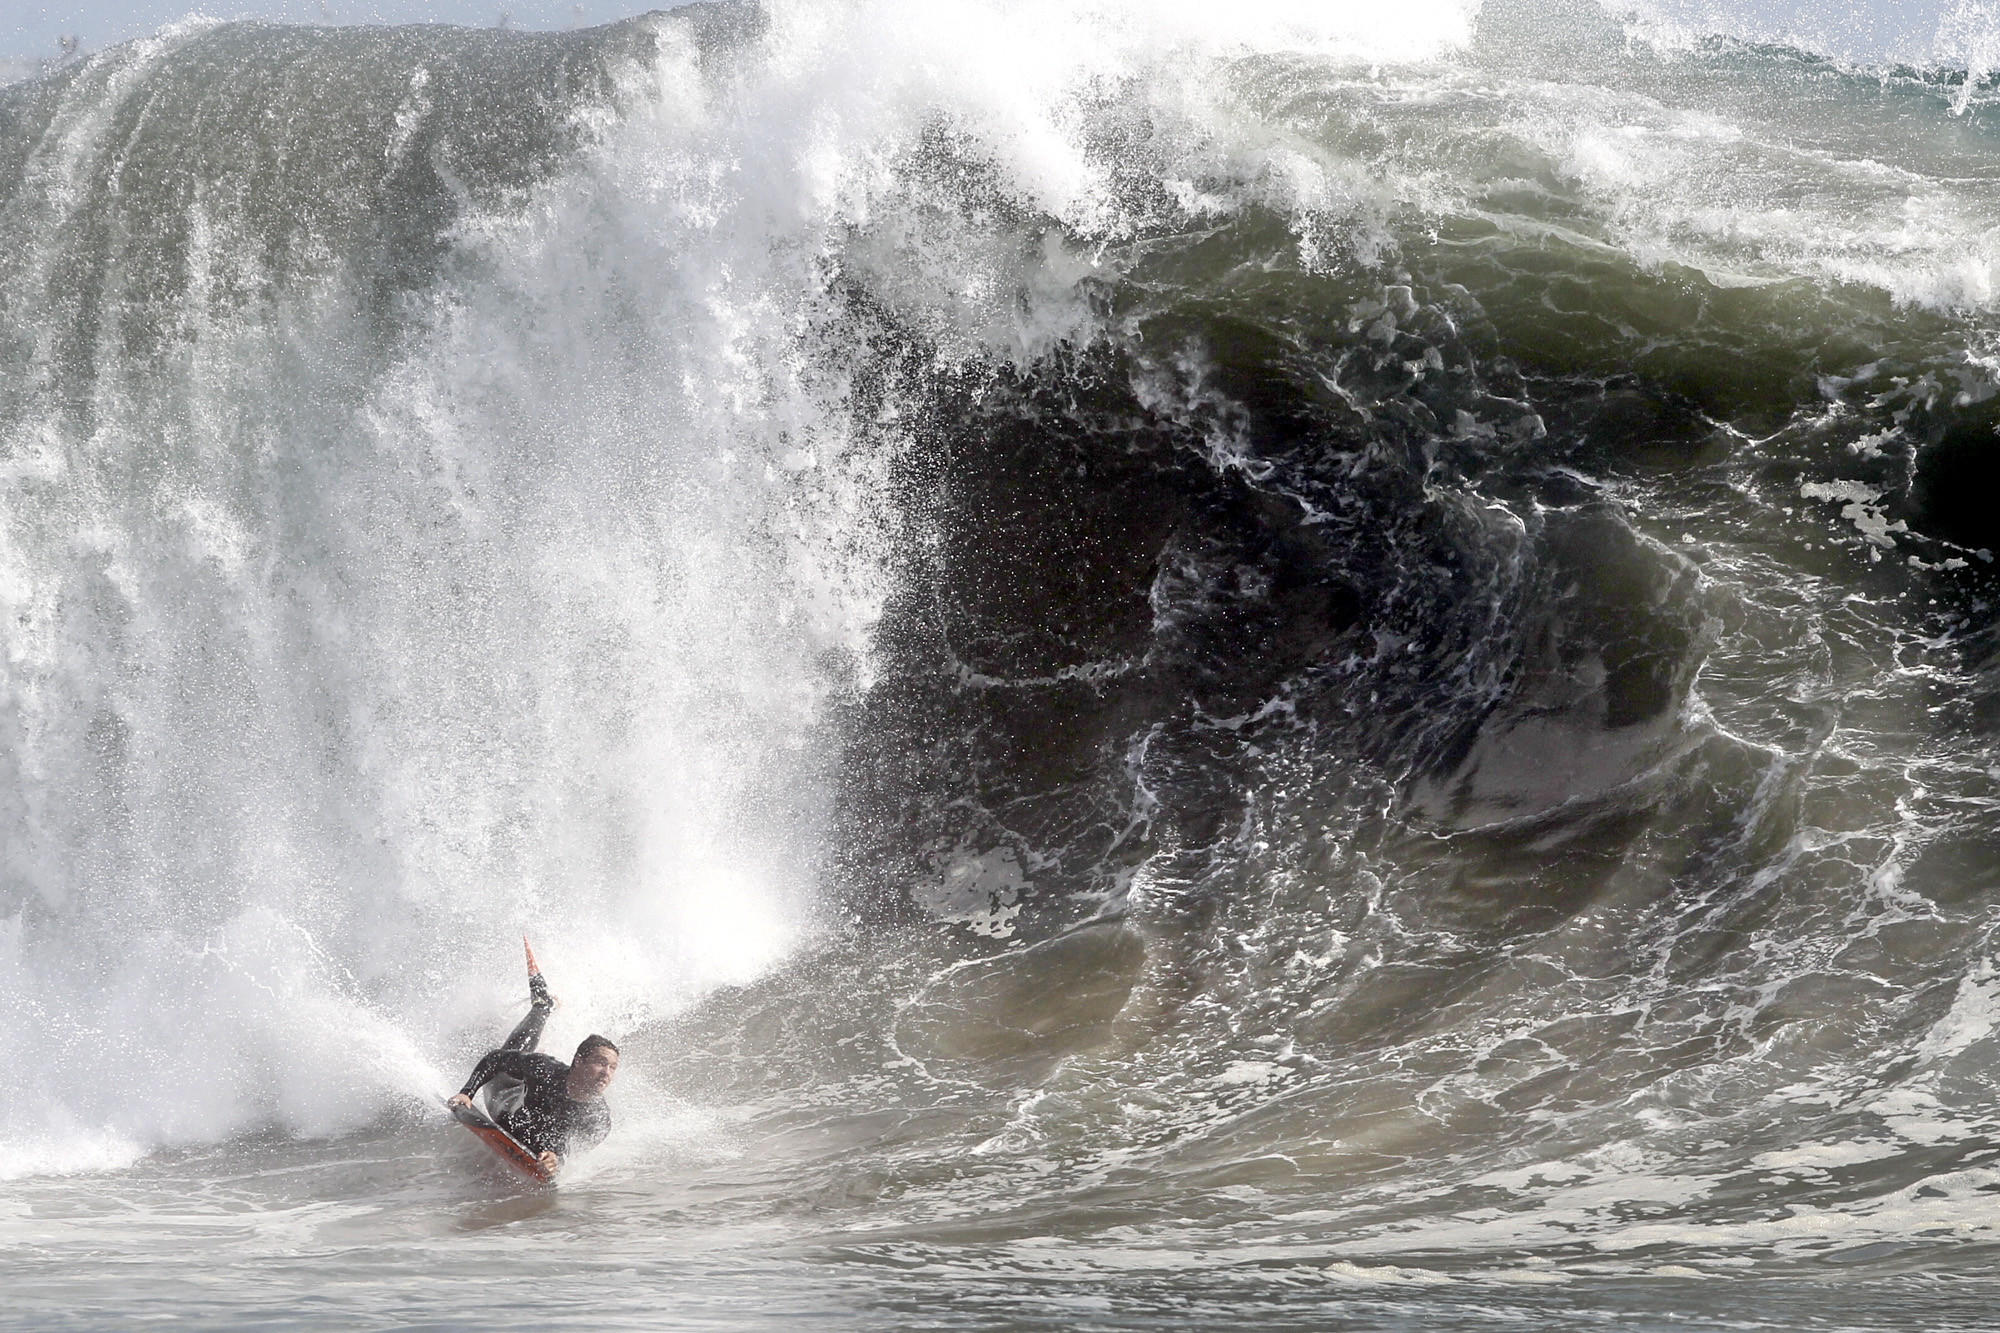 A bodyboarder catches a wave at The Wedge in Newport Beach in March.